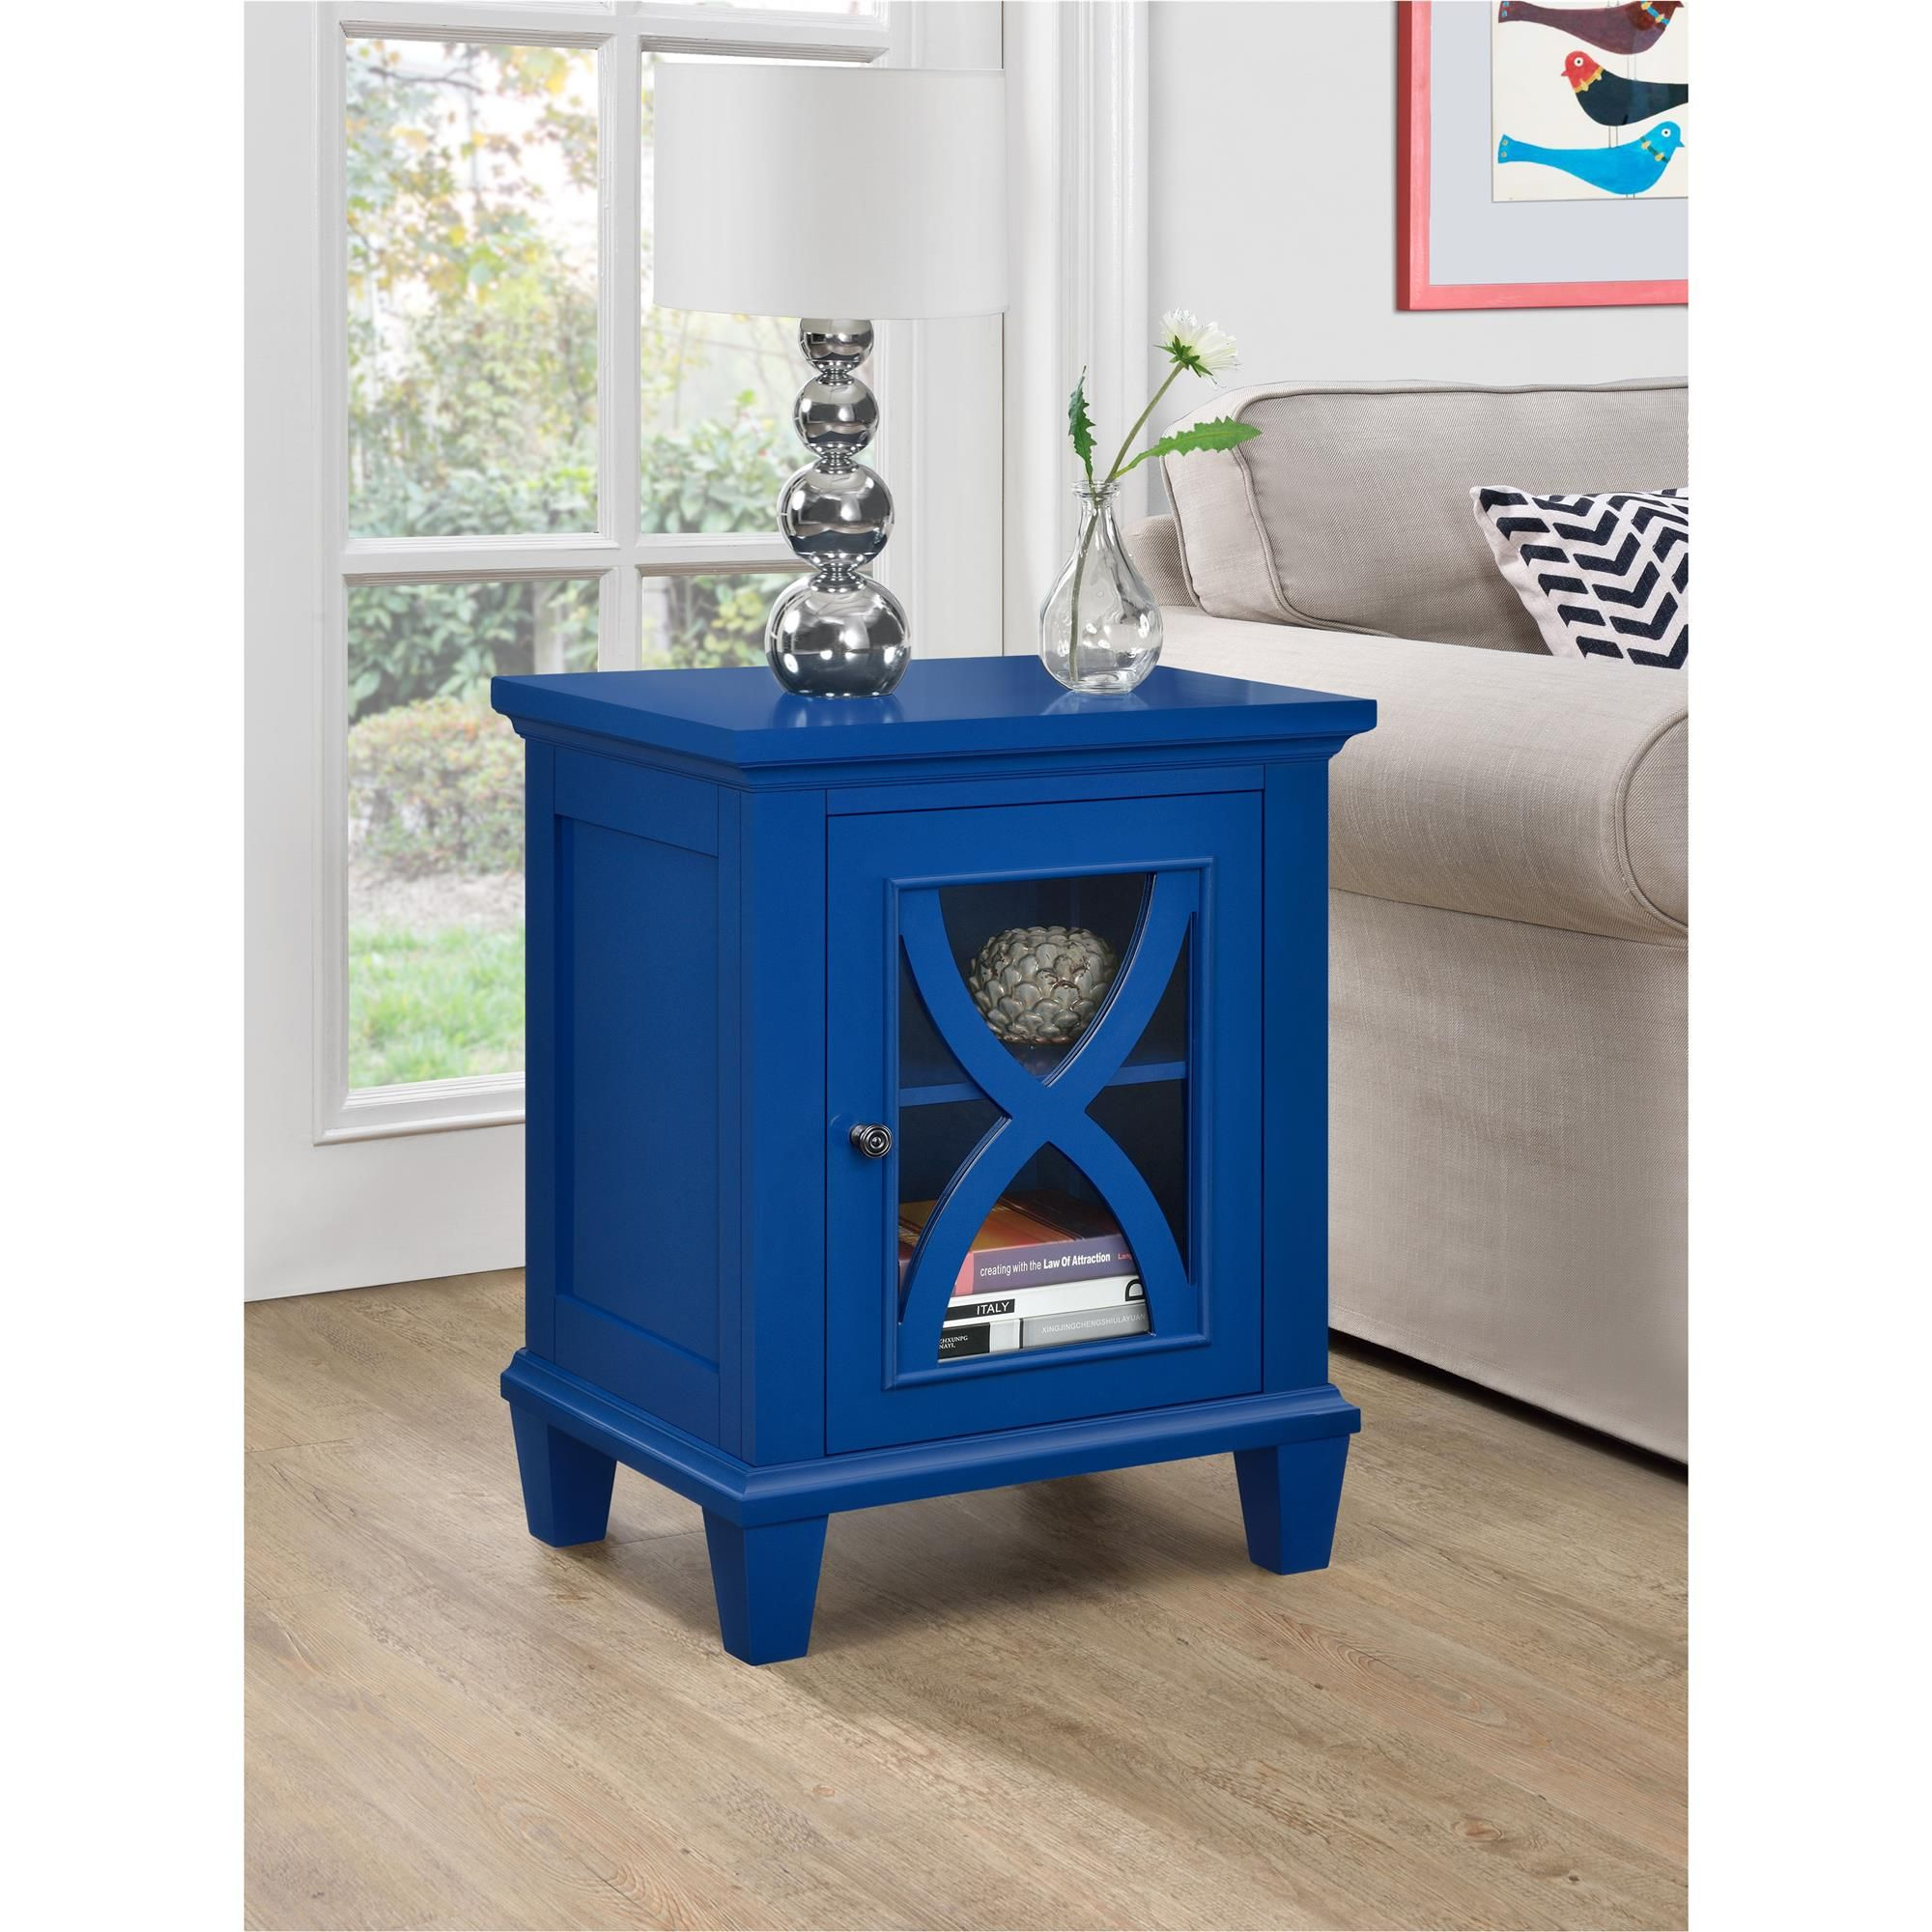 dorel home furnishings ellington blue single door accent cabinet table with glass doors oak lamp half moon turquoise placemats and napkins tiled garden small storage west elm owl